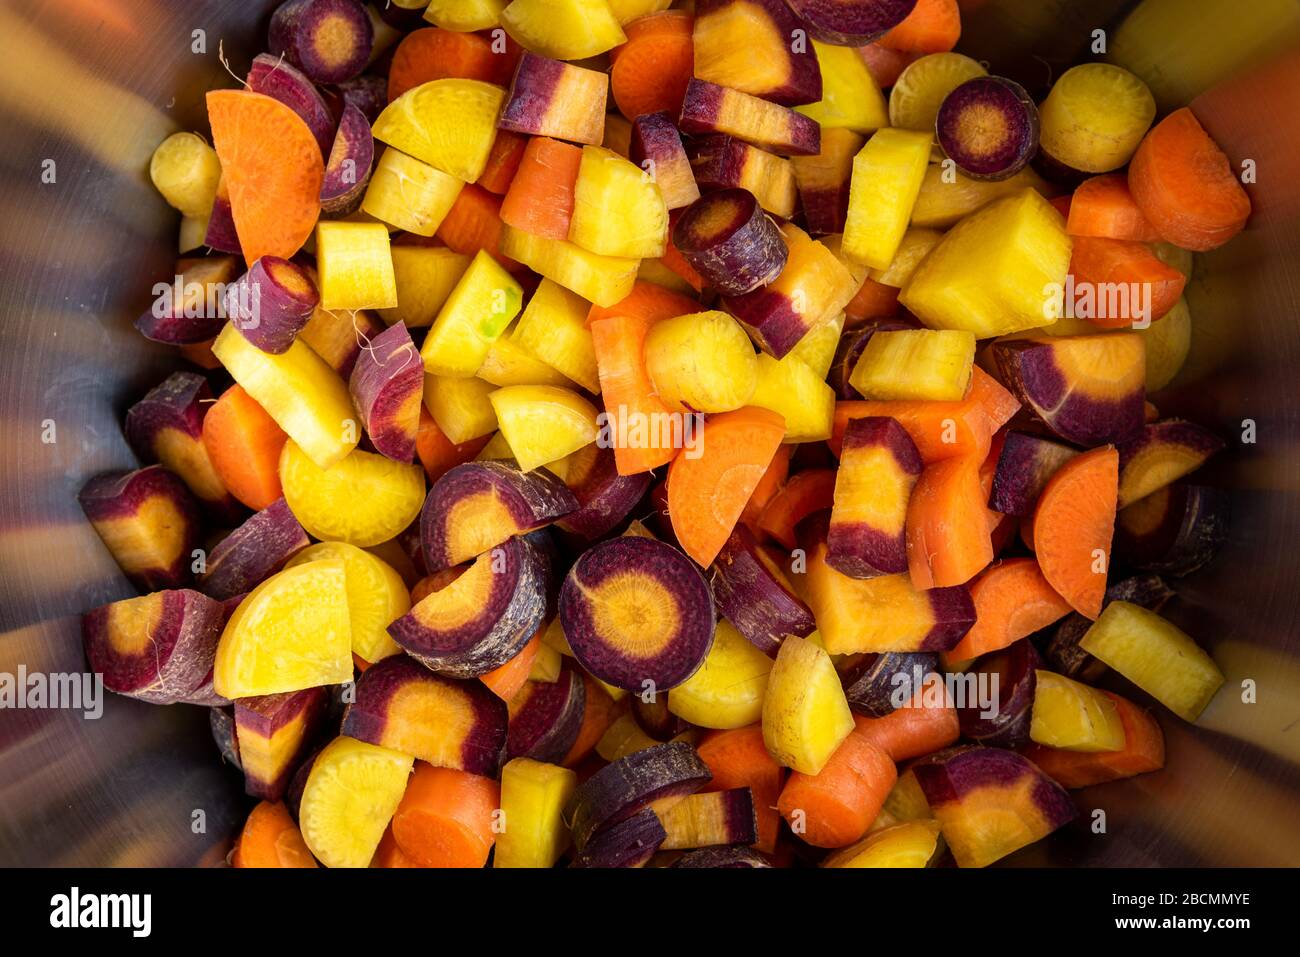 Diced rainbow carrots in a stainless-steel bowl, close-up Stock Photo